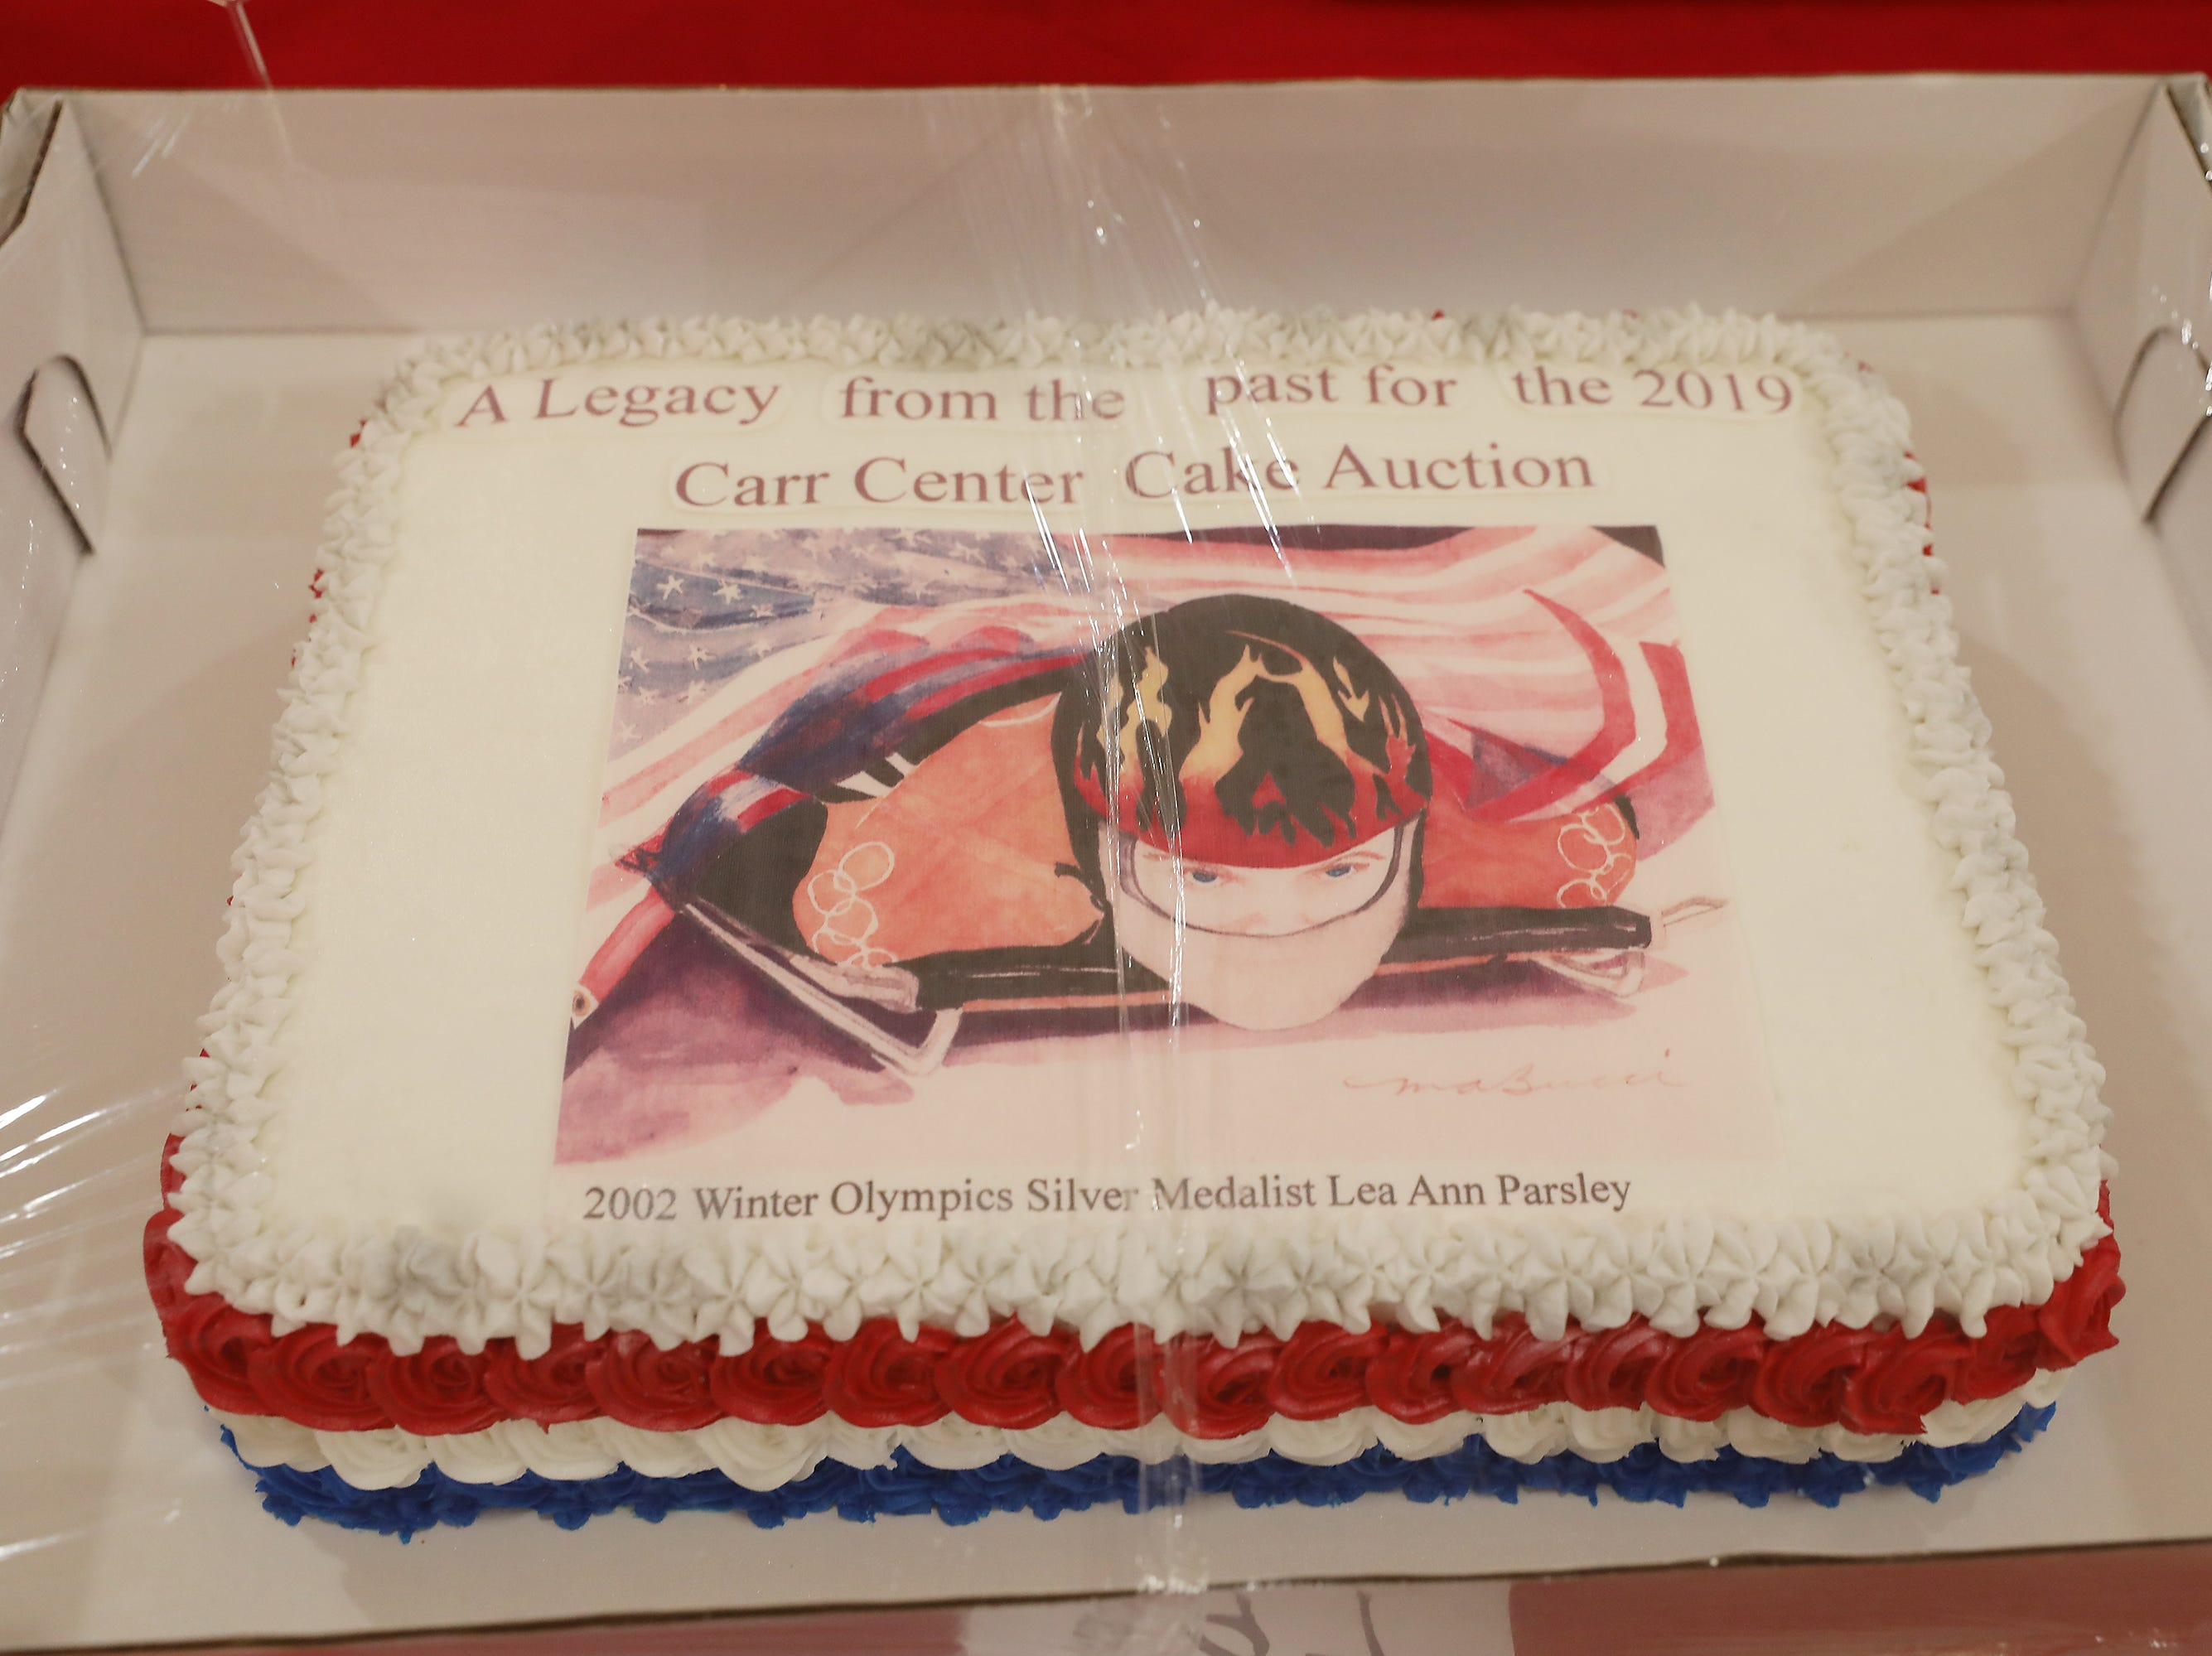 12:45 P.M. Friday cake 297 Mary Ann Bucci -  print of Lea Ann Parsley, 2002 Winter Olympics Silver Medalist by Mary Ann Bucci, signed by her and Lea Ann; $125.